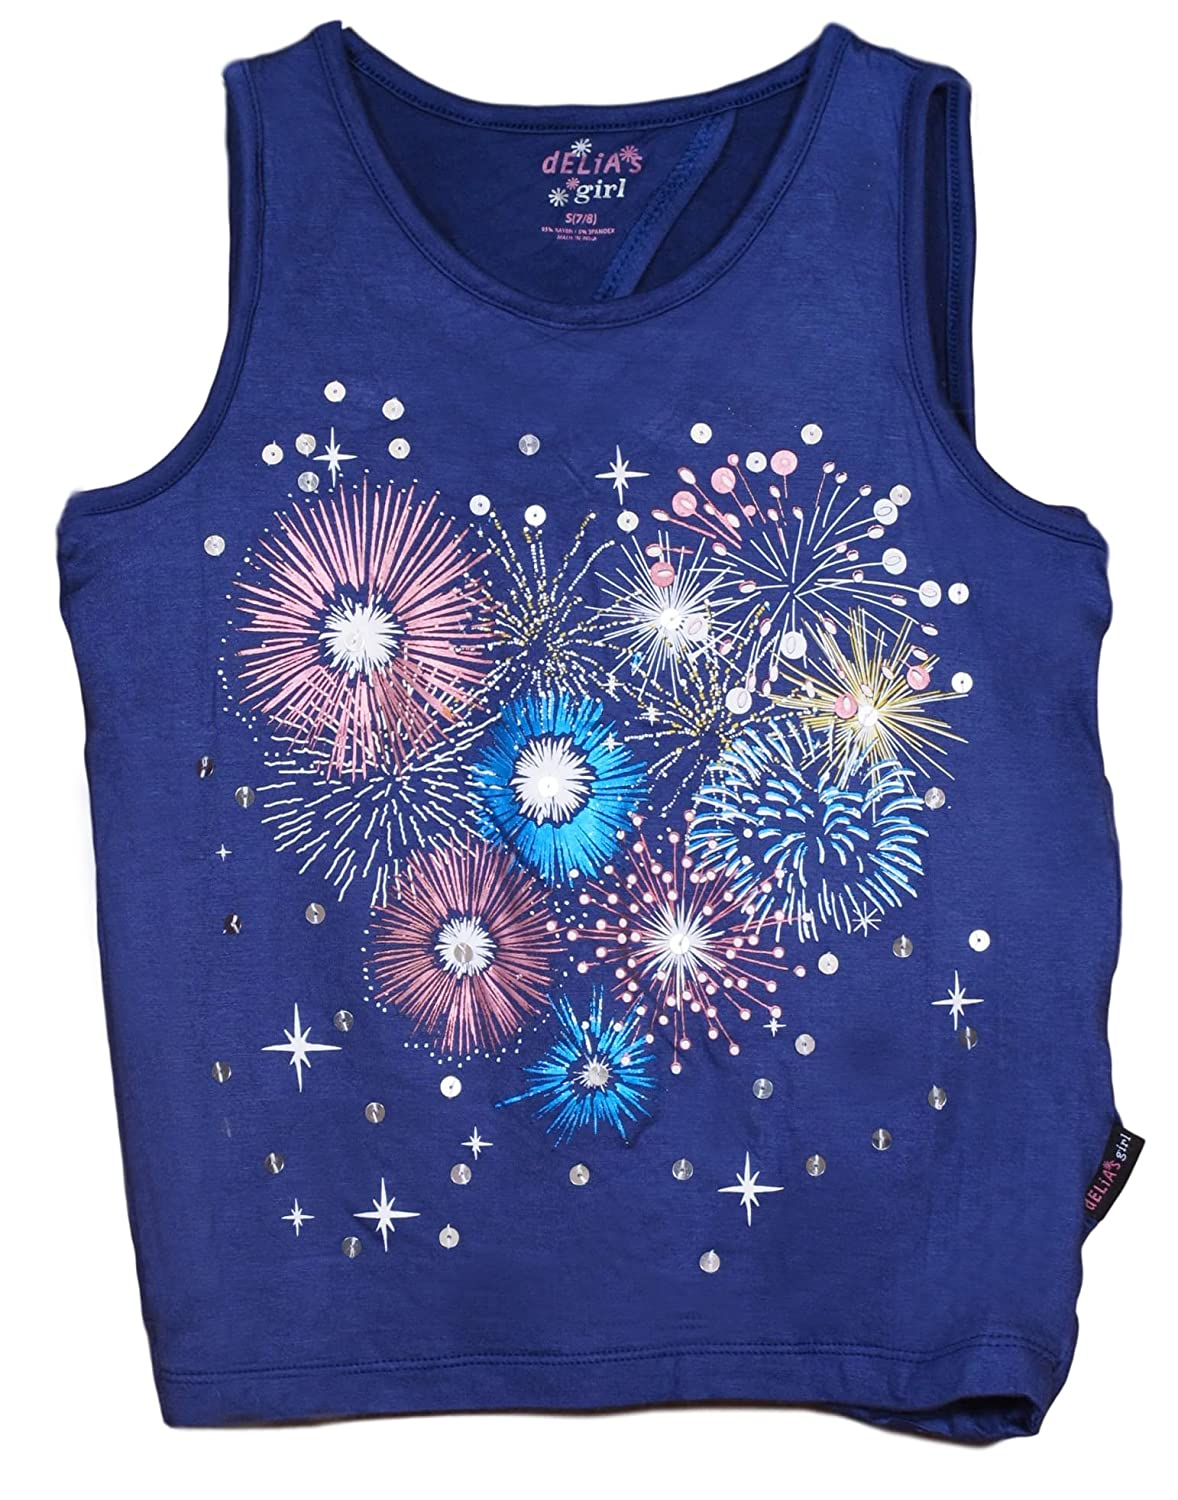 dELiAs Girls Graphic Tank Top Fireworks Design Tee